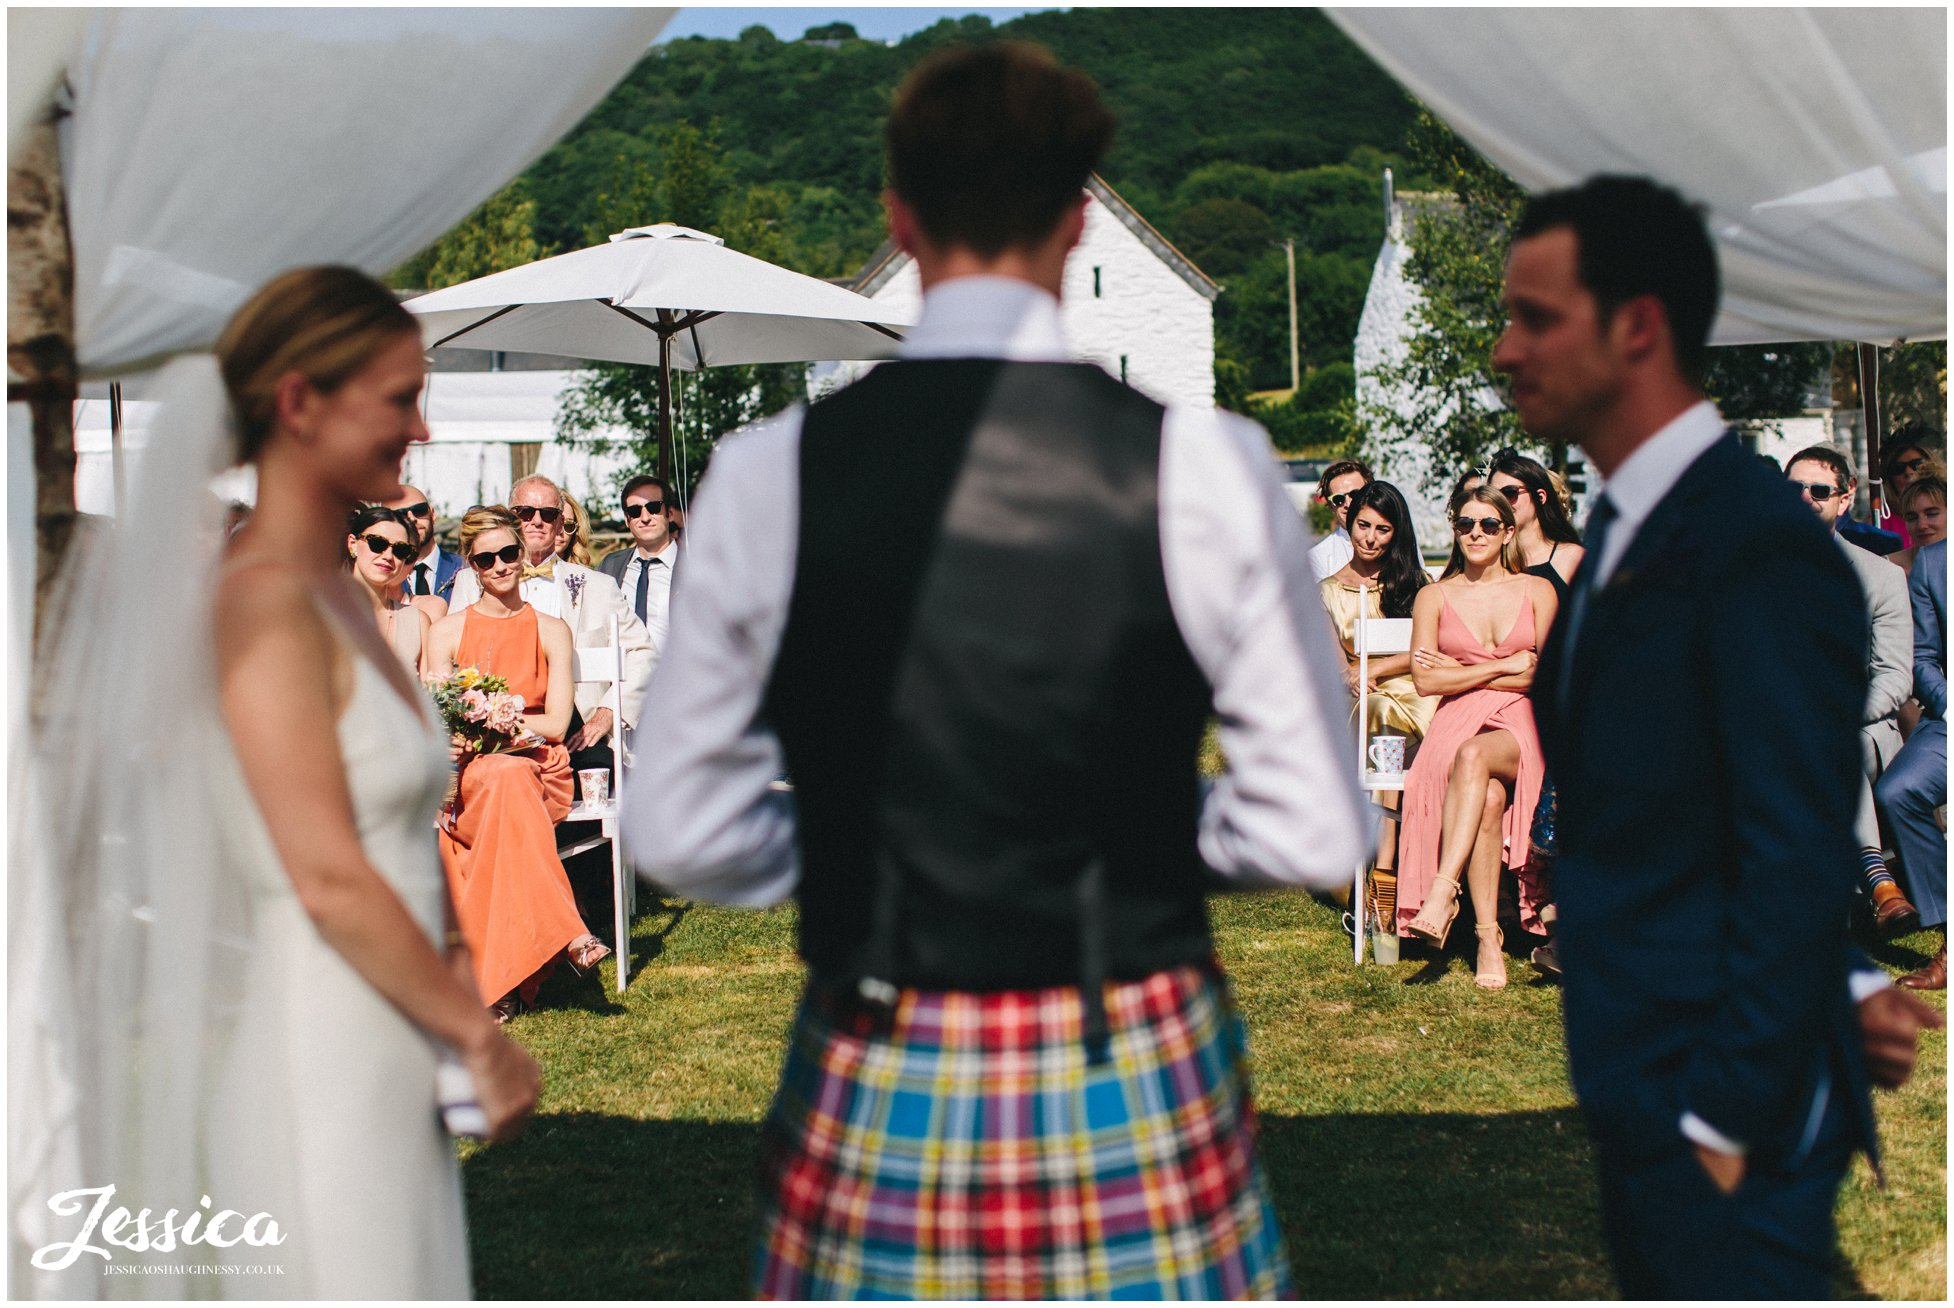 the guests watch the couple during their wedding service